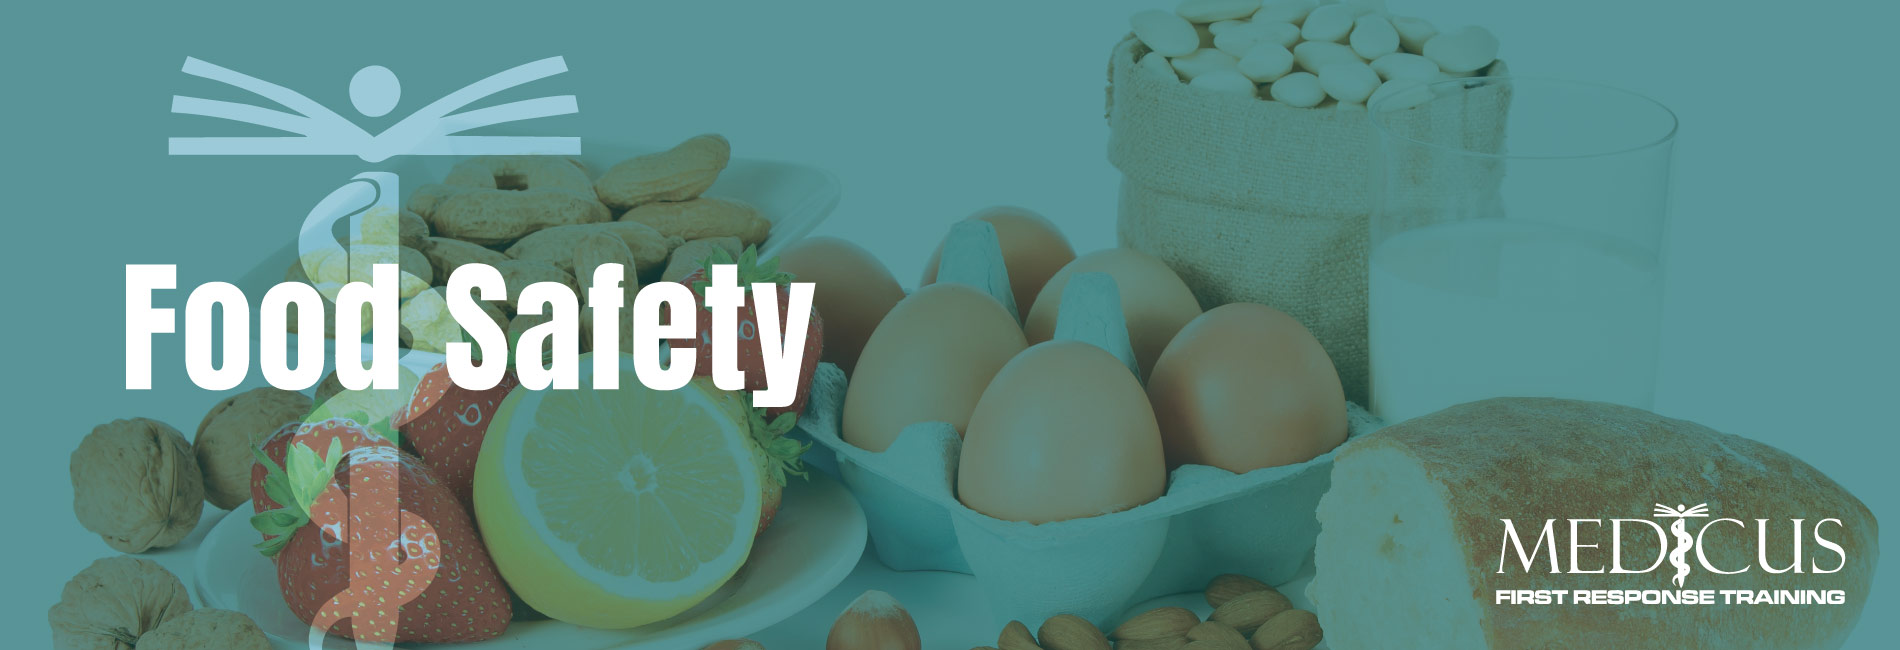 Medicus-Training-Carmarthen-Services-Food-Safety